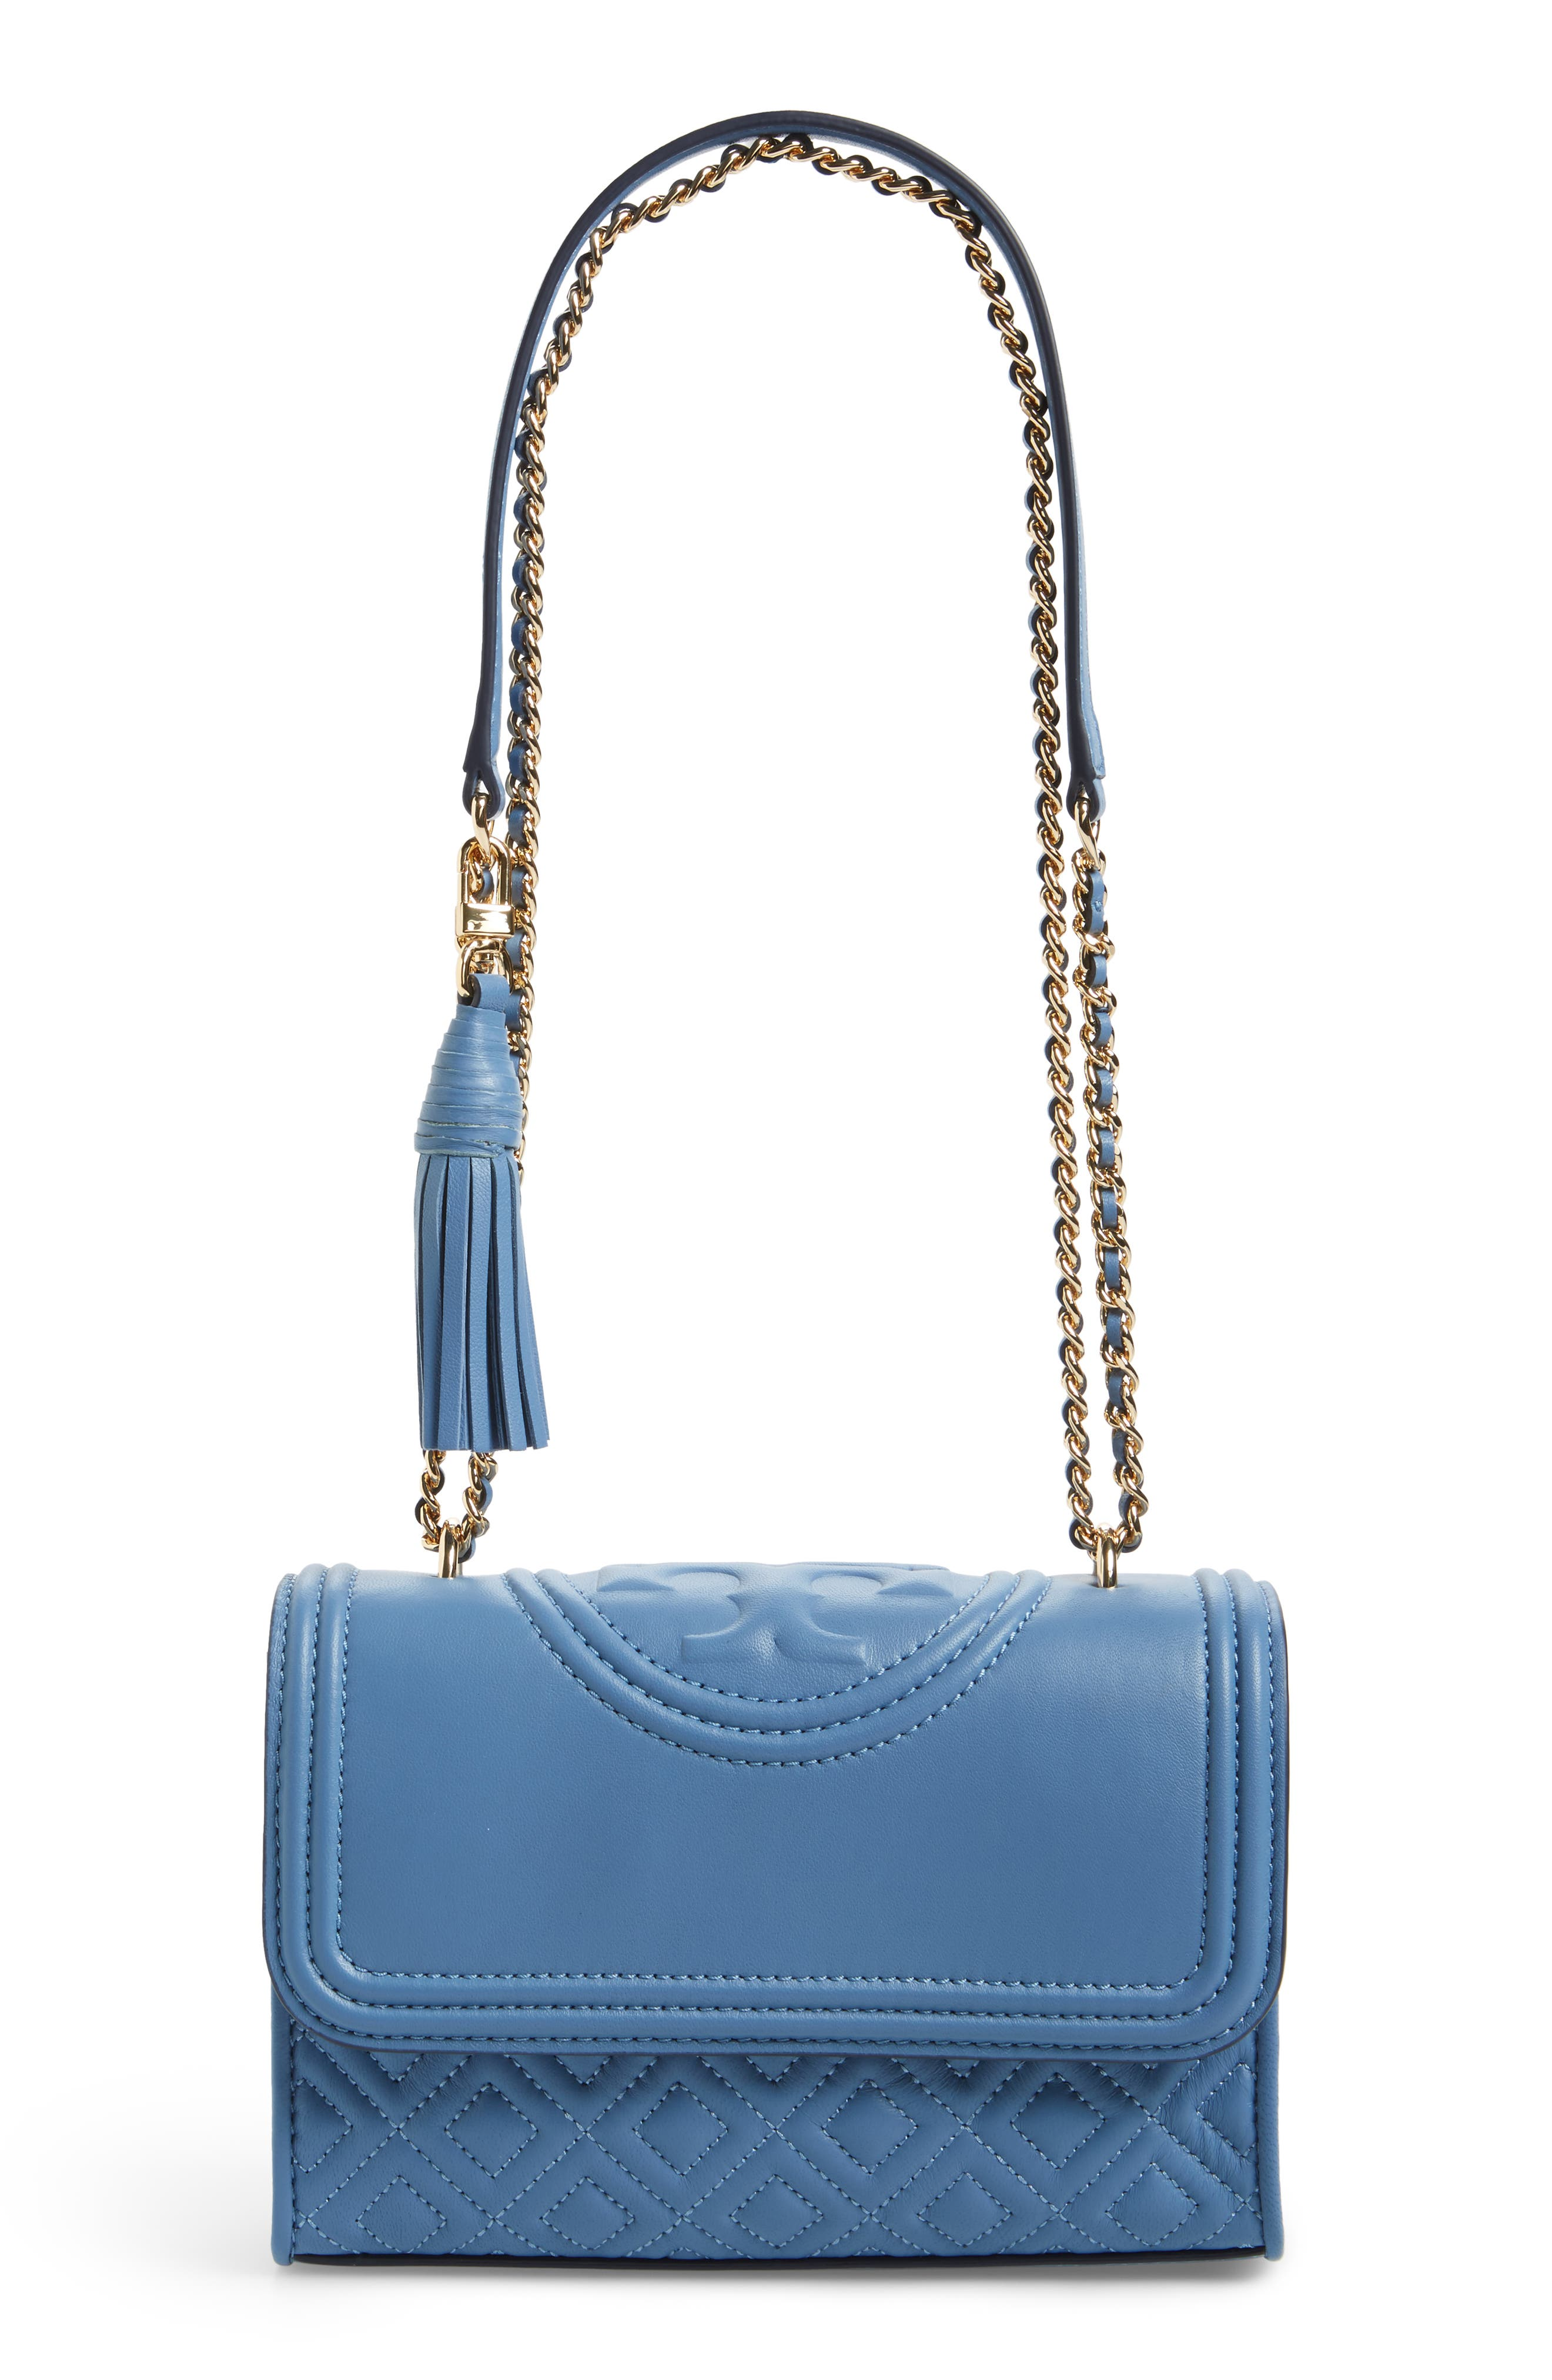 Alternate Image 1 Selected - Tory Burch Fleming Convertible Leather Shoulder Bag